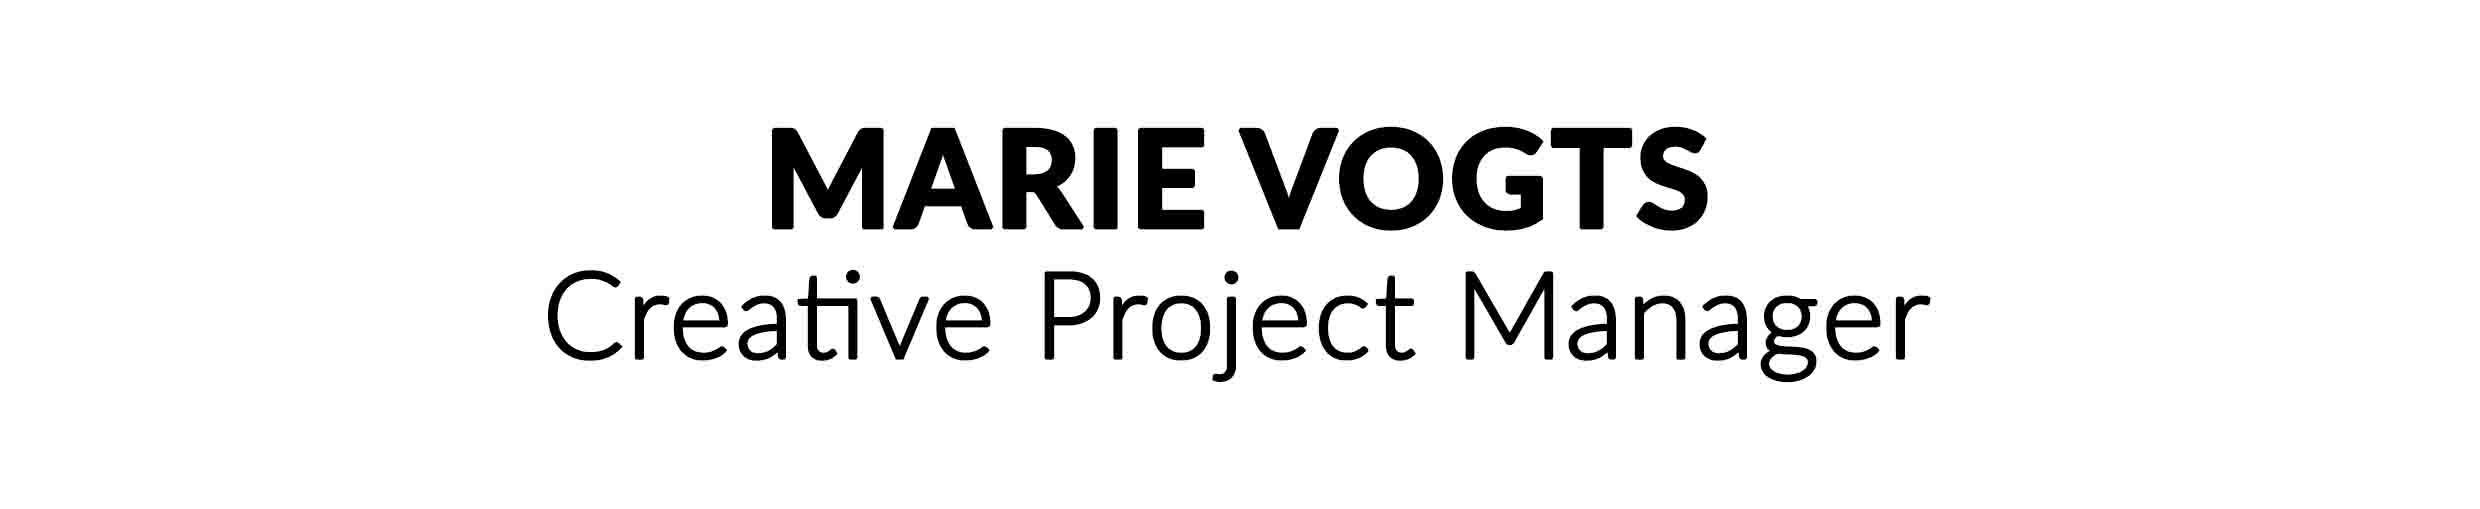 MARIE VOGTS  -  Creative Project Manager